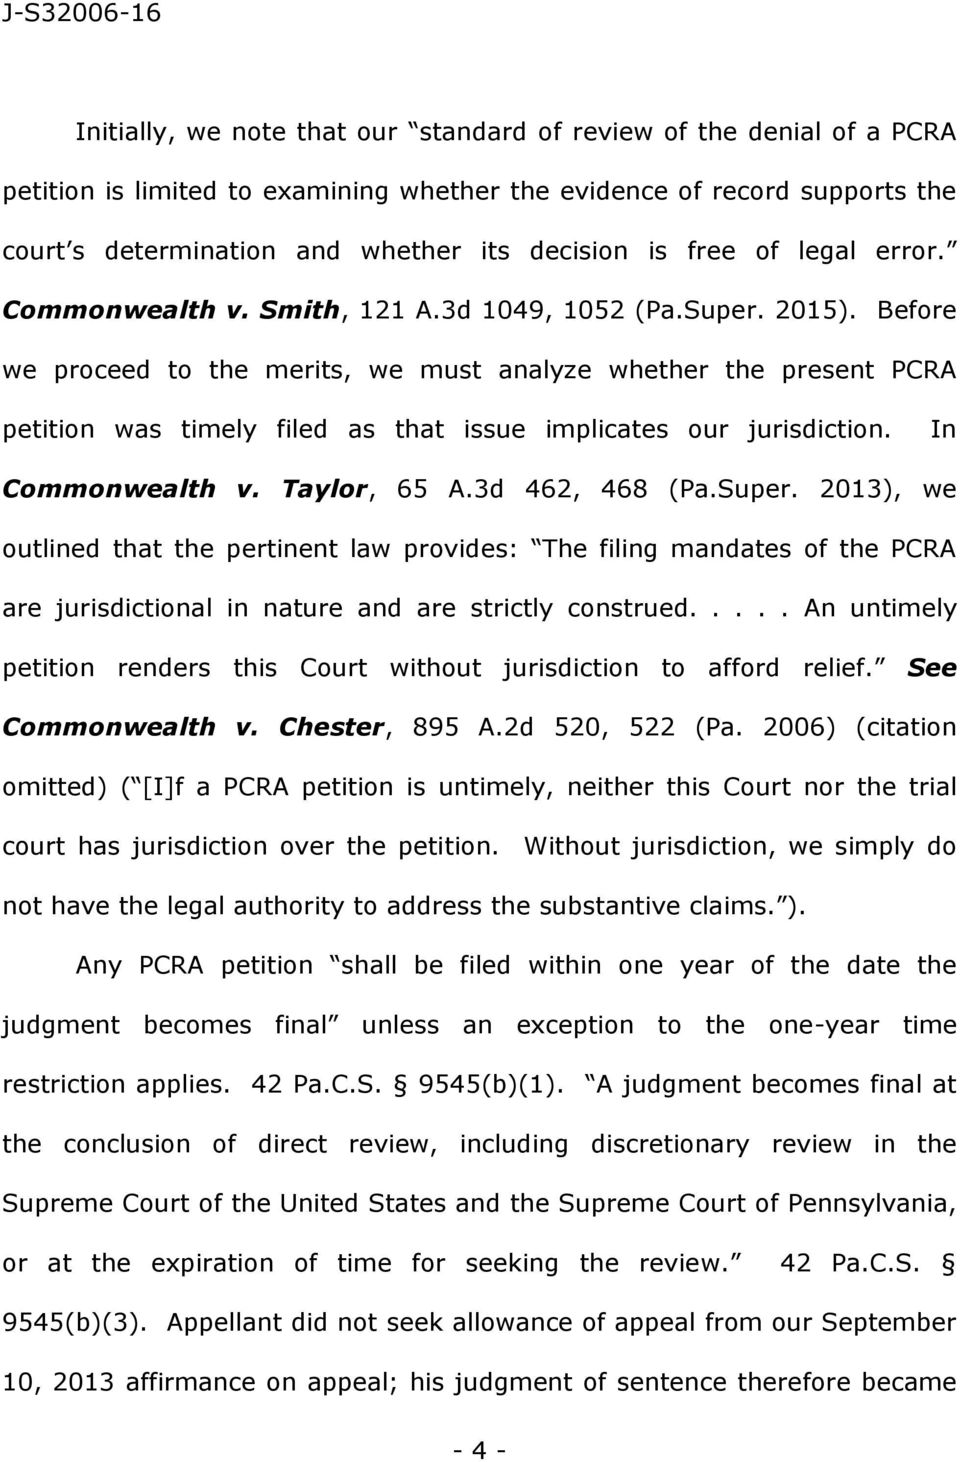 Before we proceed to the merits, we must analyze whether the present PCRA petition was timely filed as that issue implicates our jurisdiction. In Commonwealth v. Taylor, 65 A.3d 462, 468 (Pa.Super.